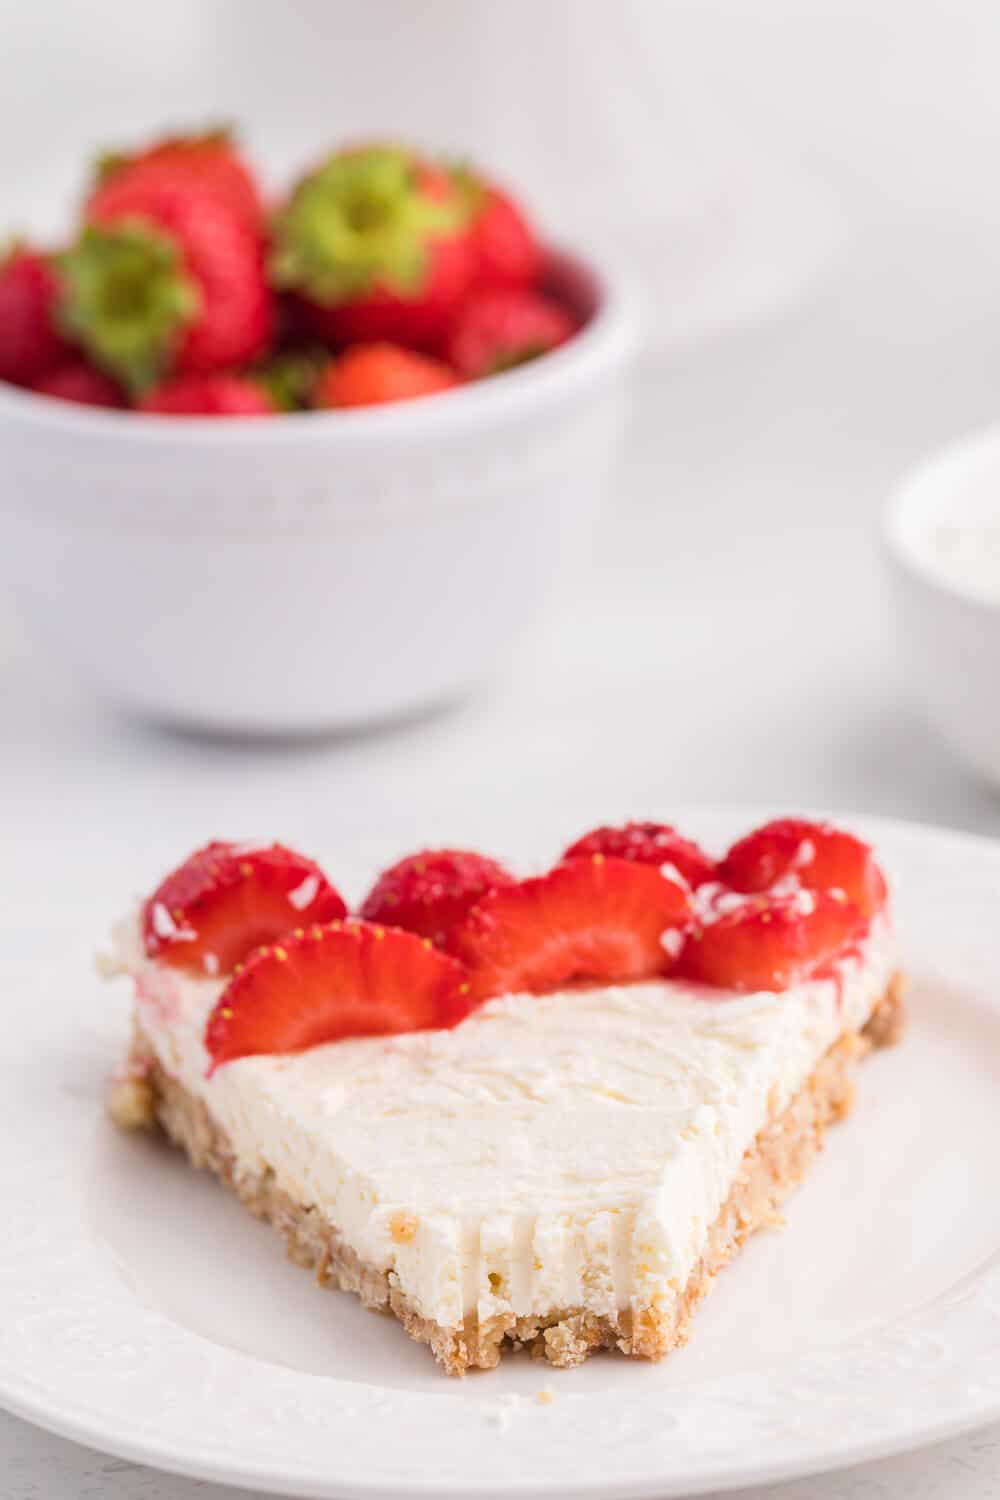 A slice of no-bake strawberry cheesecake with a bite out of the end